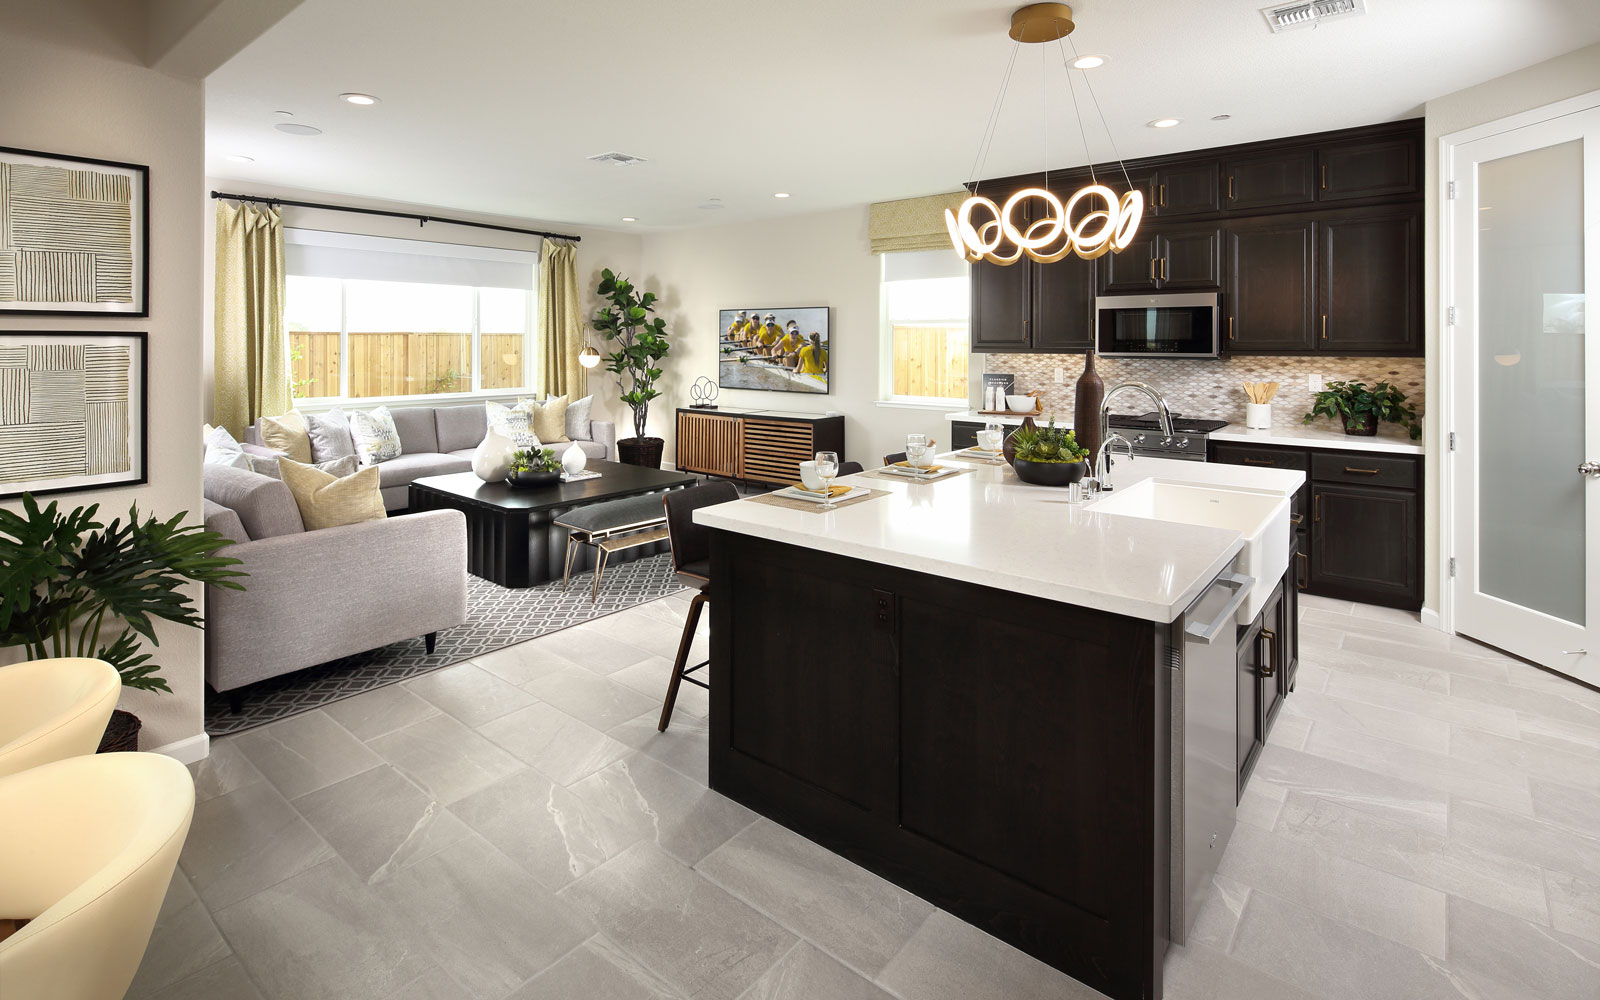 Kitchen to Great Room | Residence 3 | Easton at Delaney Park in Oakley, CA | Brookfield Residential